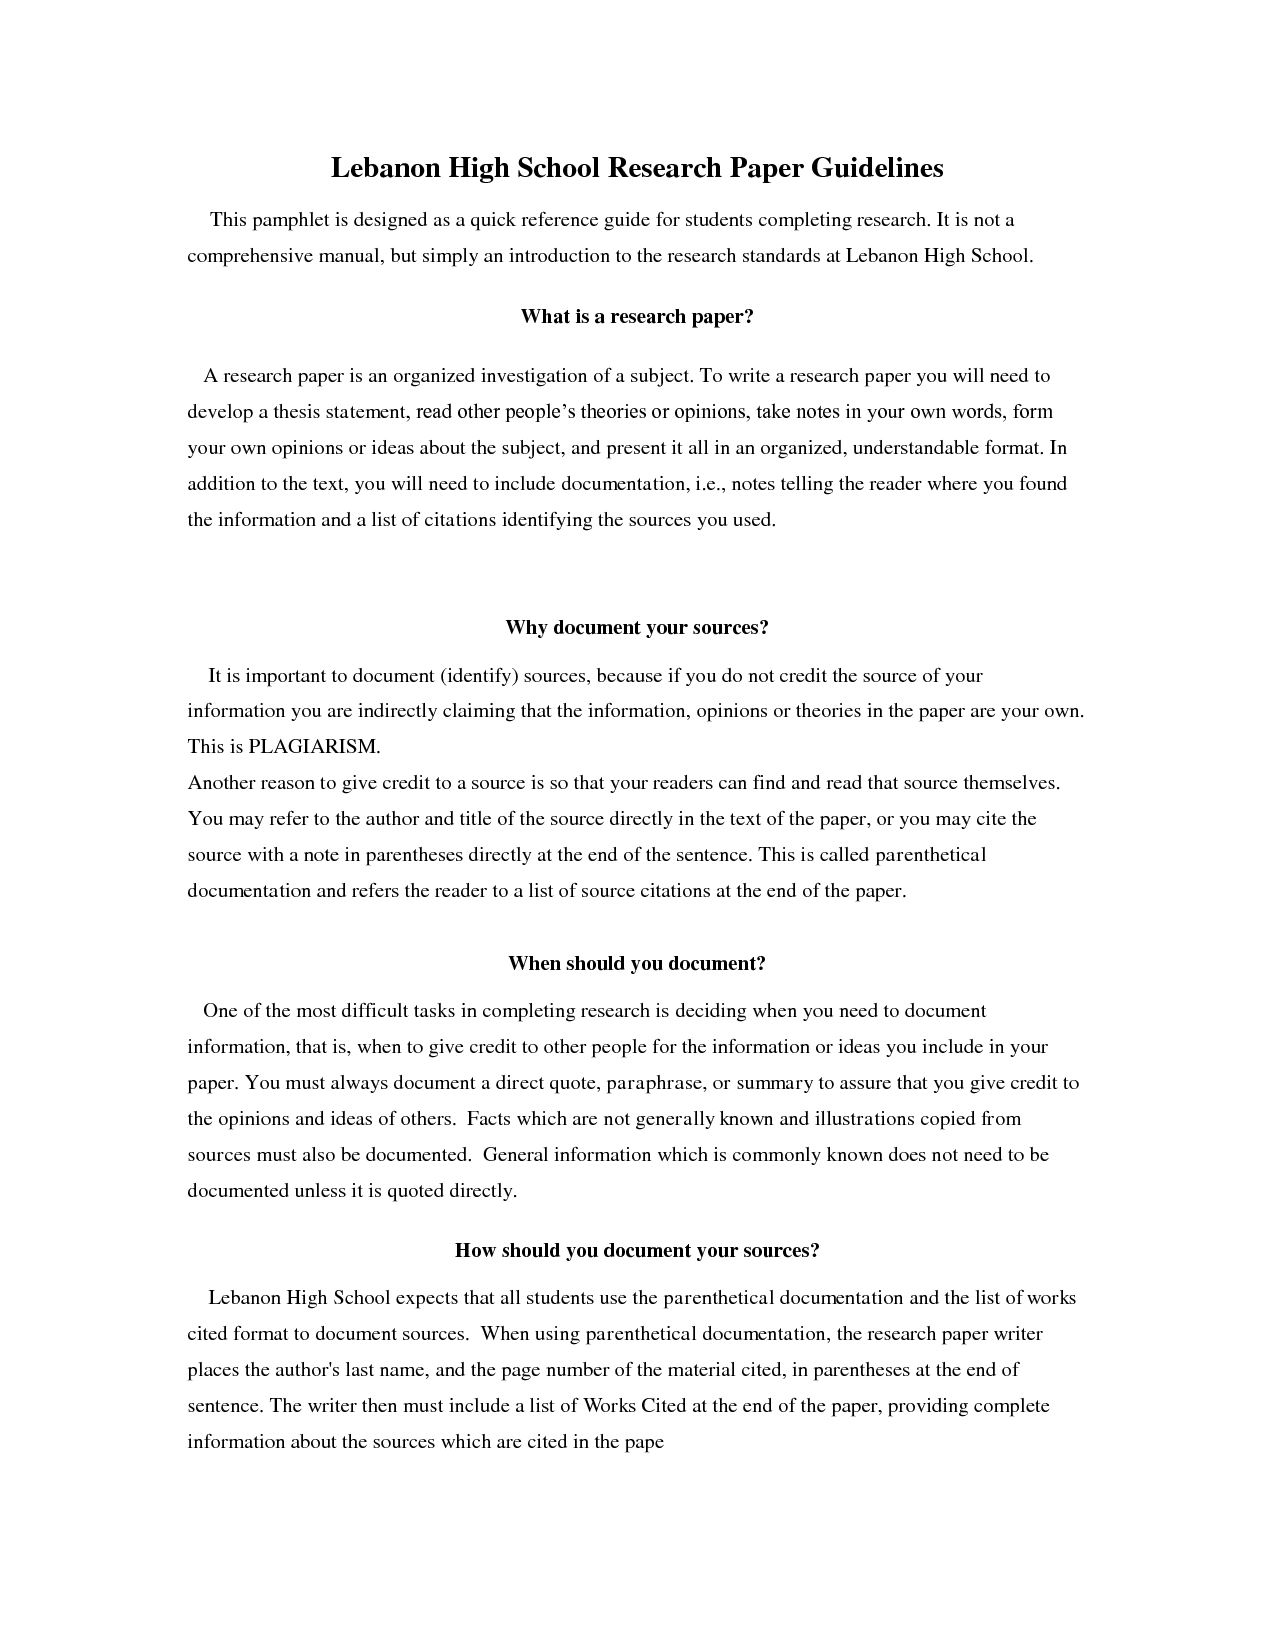 024 Research Paper Brilliant Ideas Of Effective Essay Tips About Good Topic For Nice Topics Papers High School Phenomenal Middle Questions Science Full